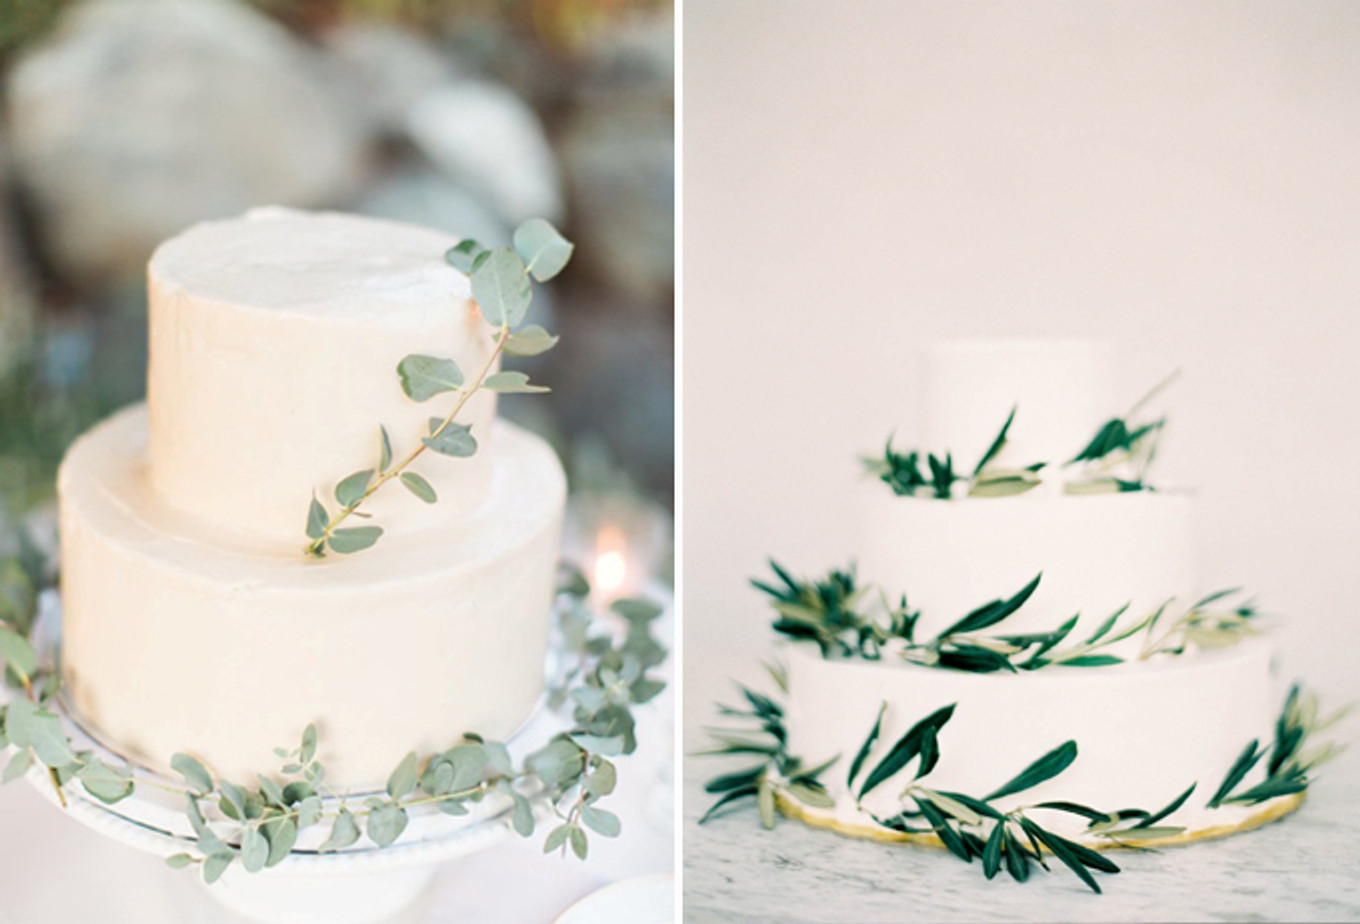 15 Mouthwatering Green Botanical Wedding Cake Ideas